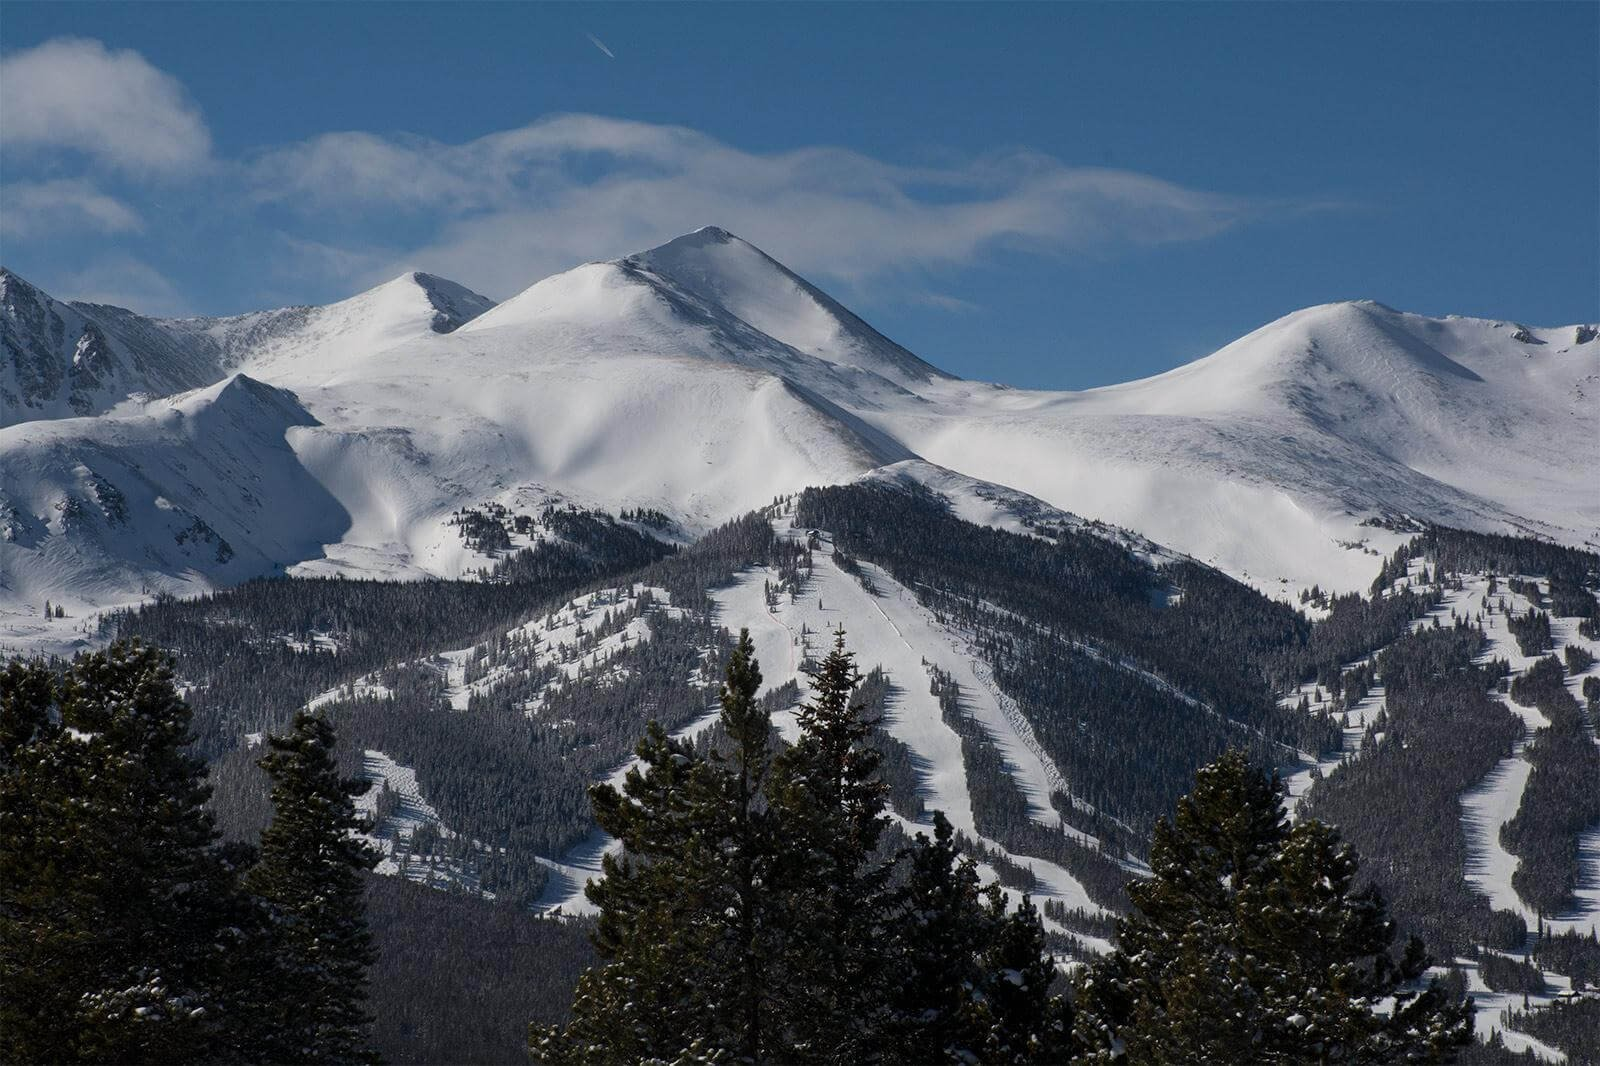 Tenmile Range above Breckenridge, Colorado